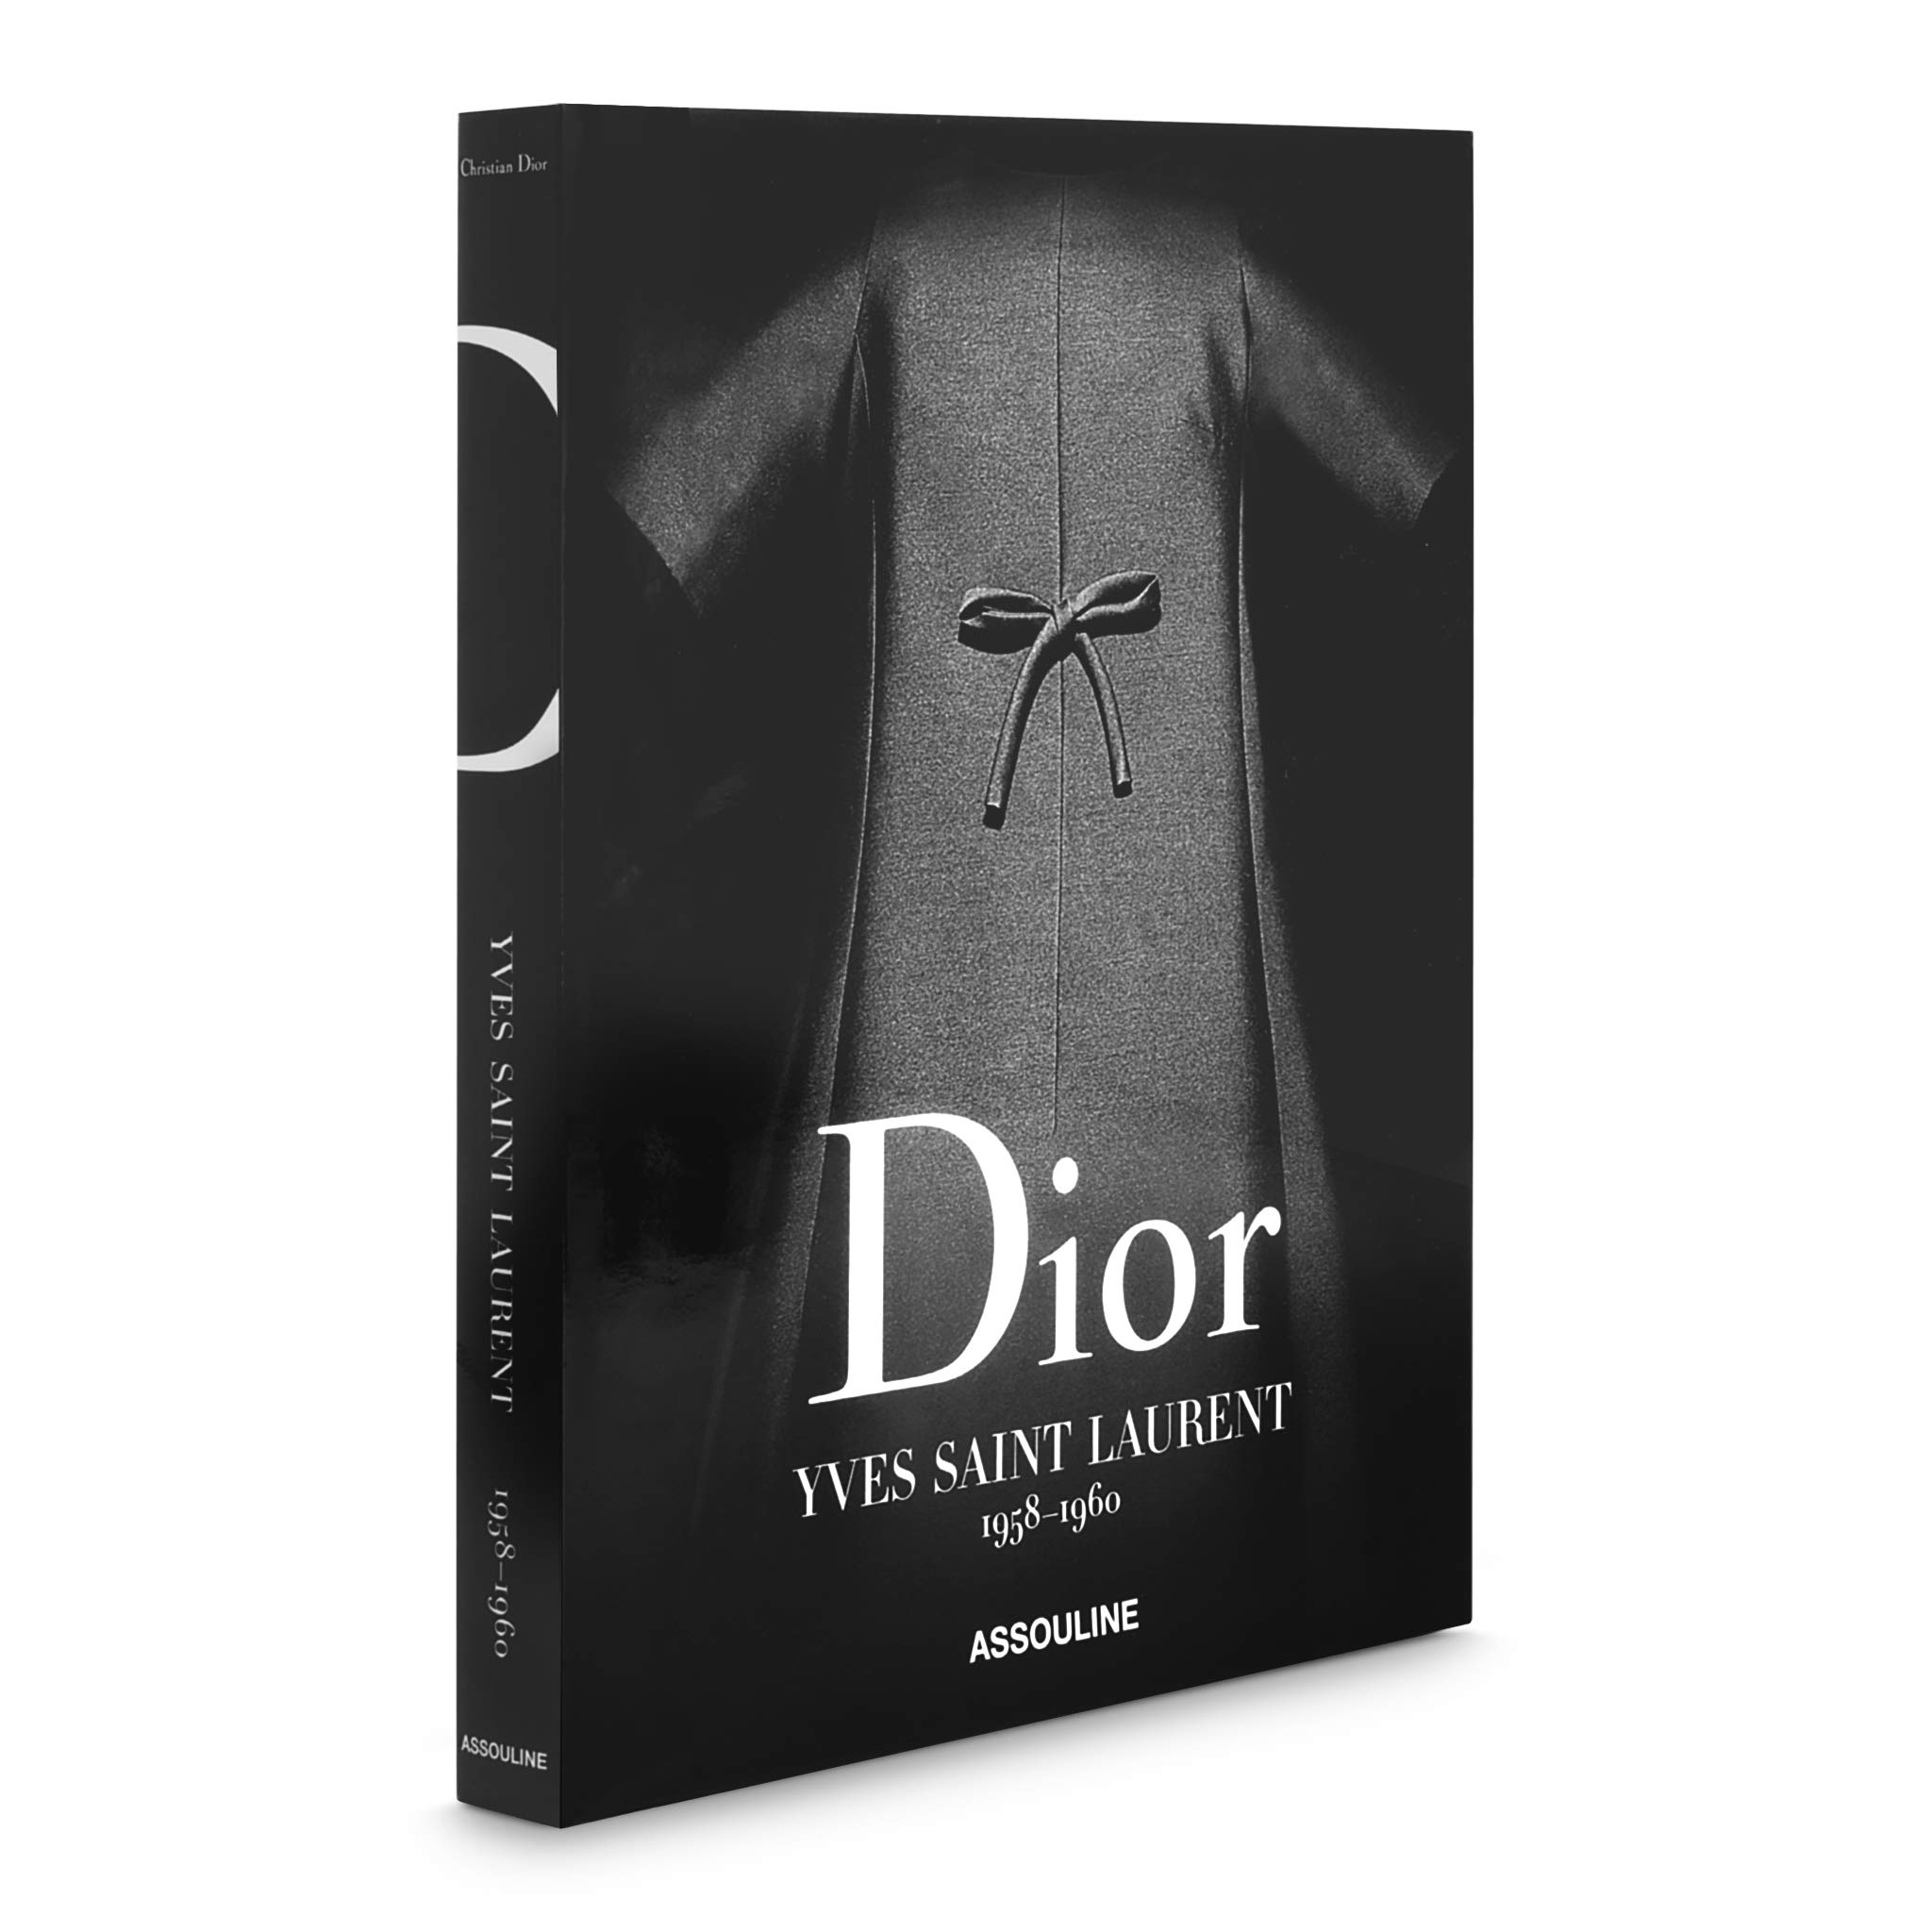 a42a1743343 Dior by Yves Saint Laurent (Trade)  Amazon.co.uk  Laurence Benaim ...